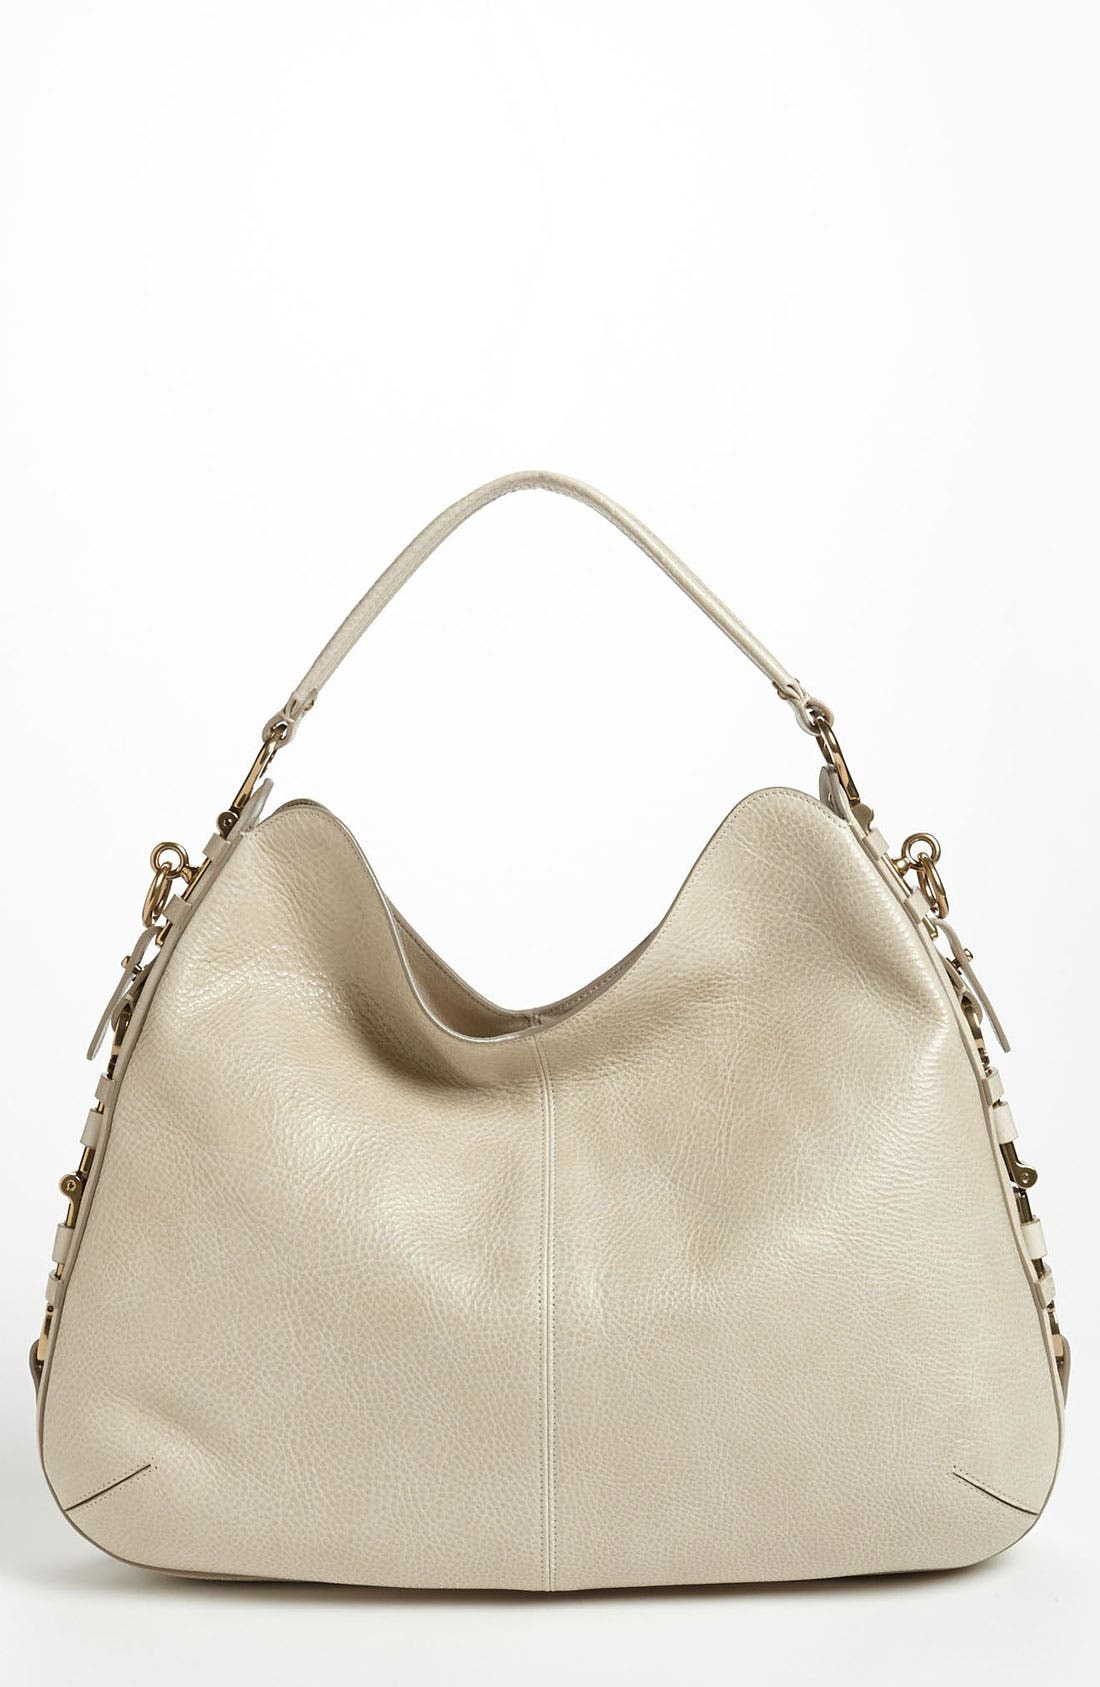 Alternate Image 1 Selected - Salvatore Ferragamo 'Fergie - Small' Hobo